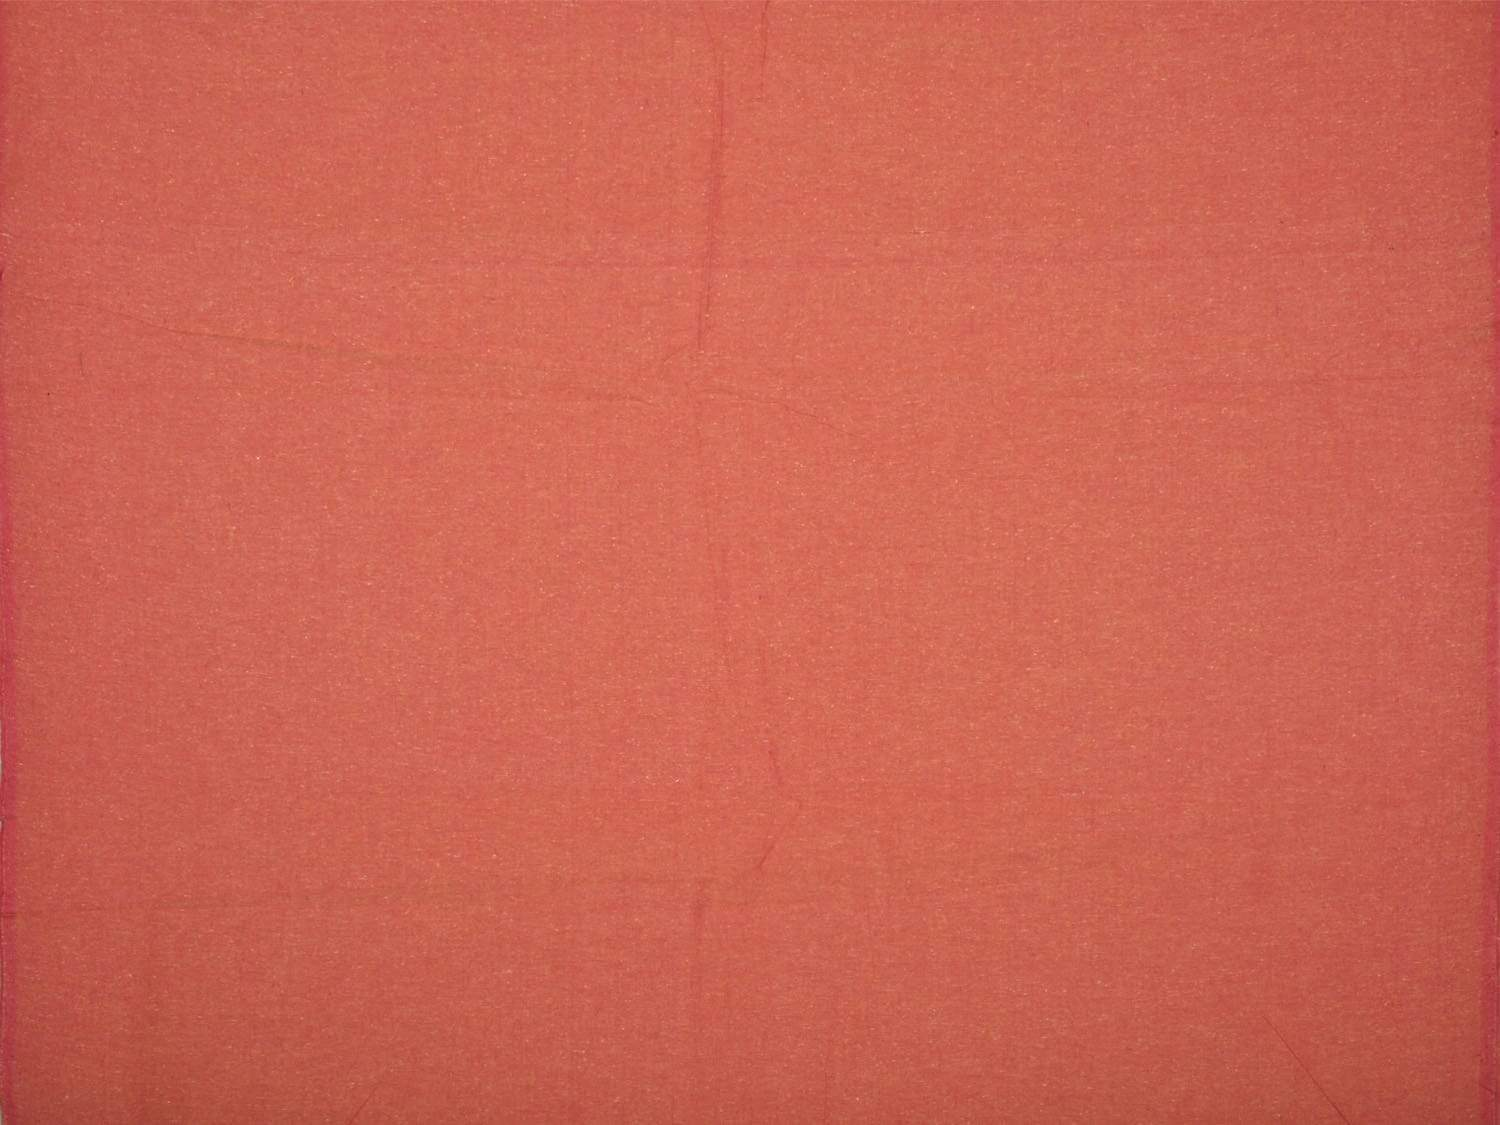 Peach Cotton Handloom Fabric Material with Plain Design f0152